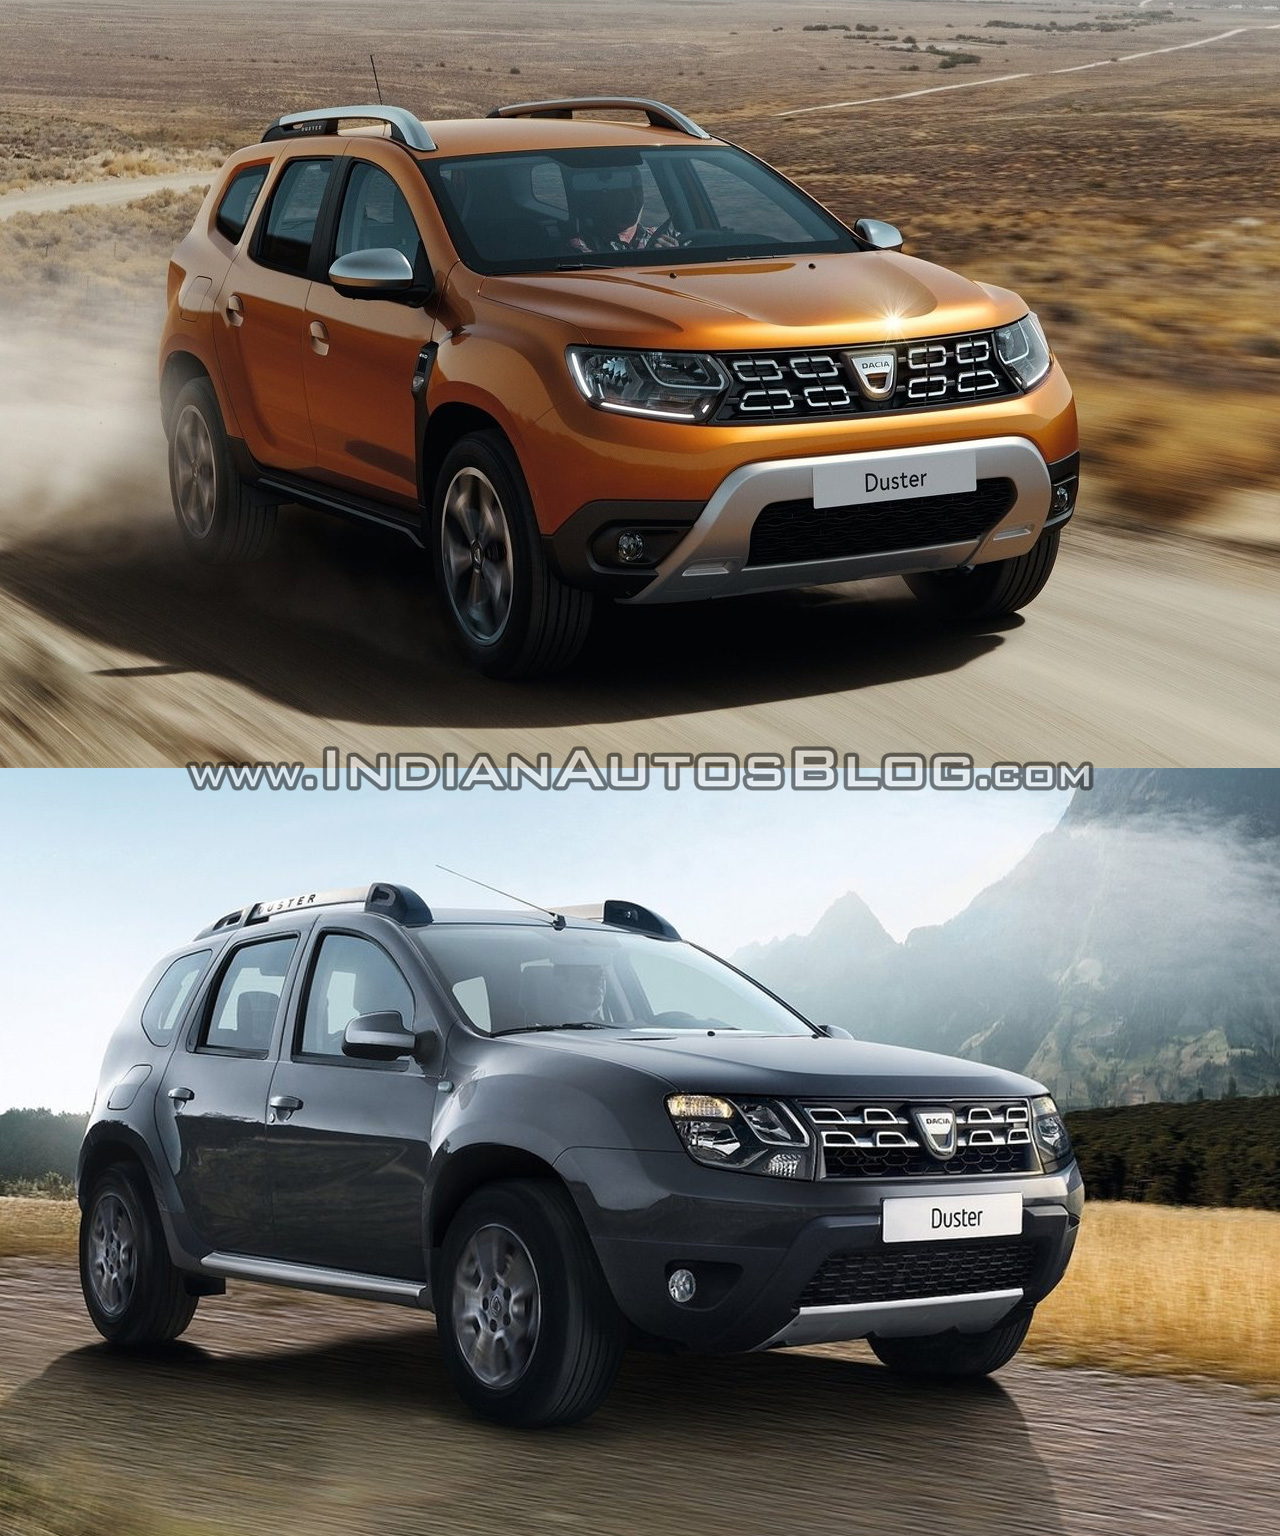 2018 dacia duster vs 2014 dacia duster old vs new. Black Bedroom Furniture Sets. Home Design Ideas